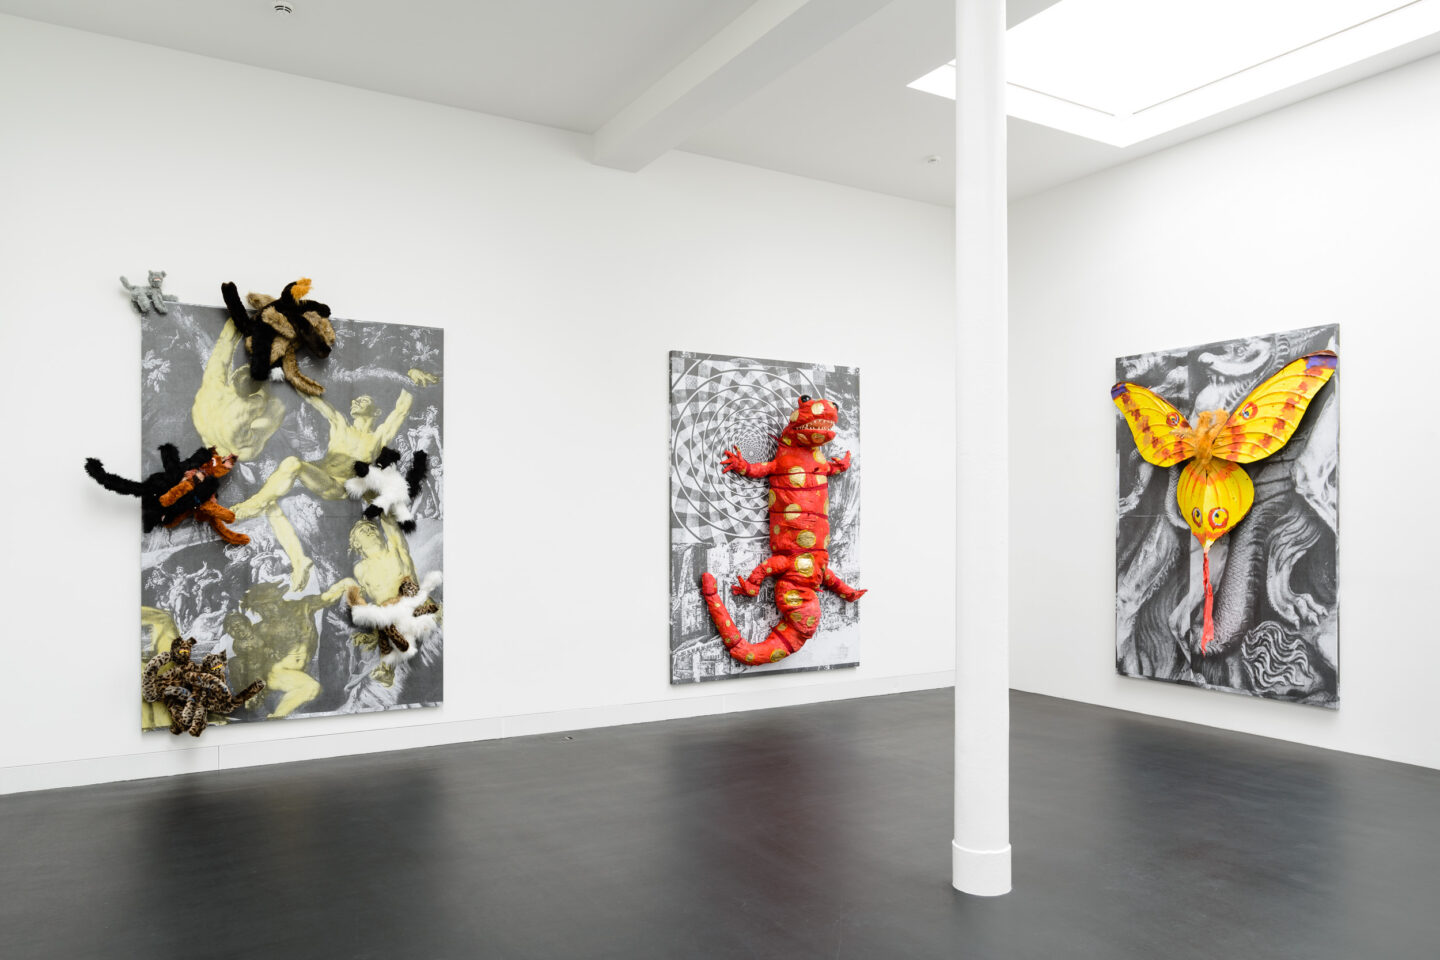 Exhibition View Monster Chetwynd Soloshow «Either This Coat's Inhabited or I'm Inhibited» at Galerie Gregor Staiger / Courtesy: the artist and Galerie Gregor Staiger